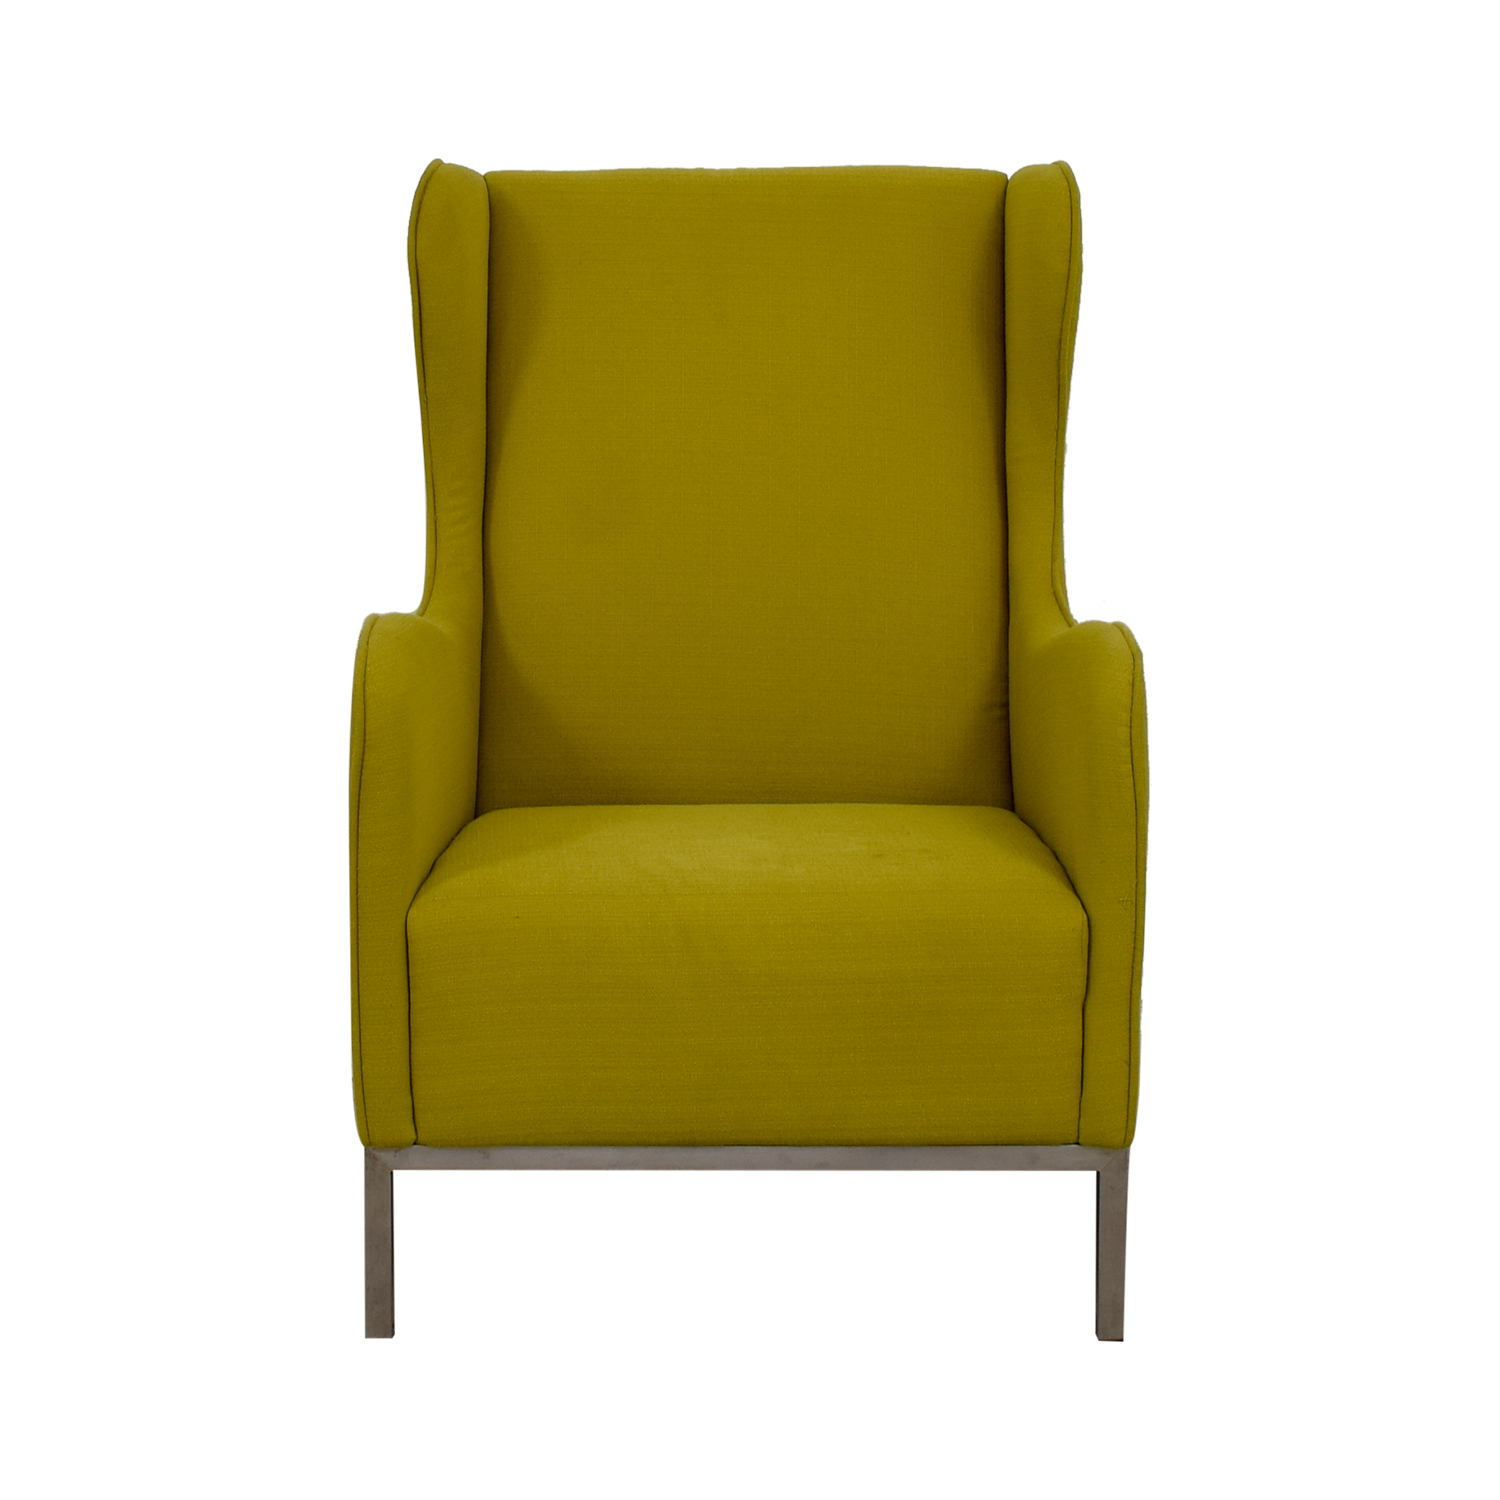 Crate & Barrel Crate & Barrel Neon Green Accent Chair second hand